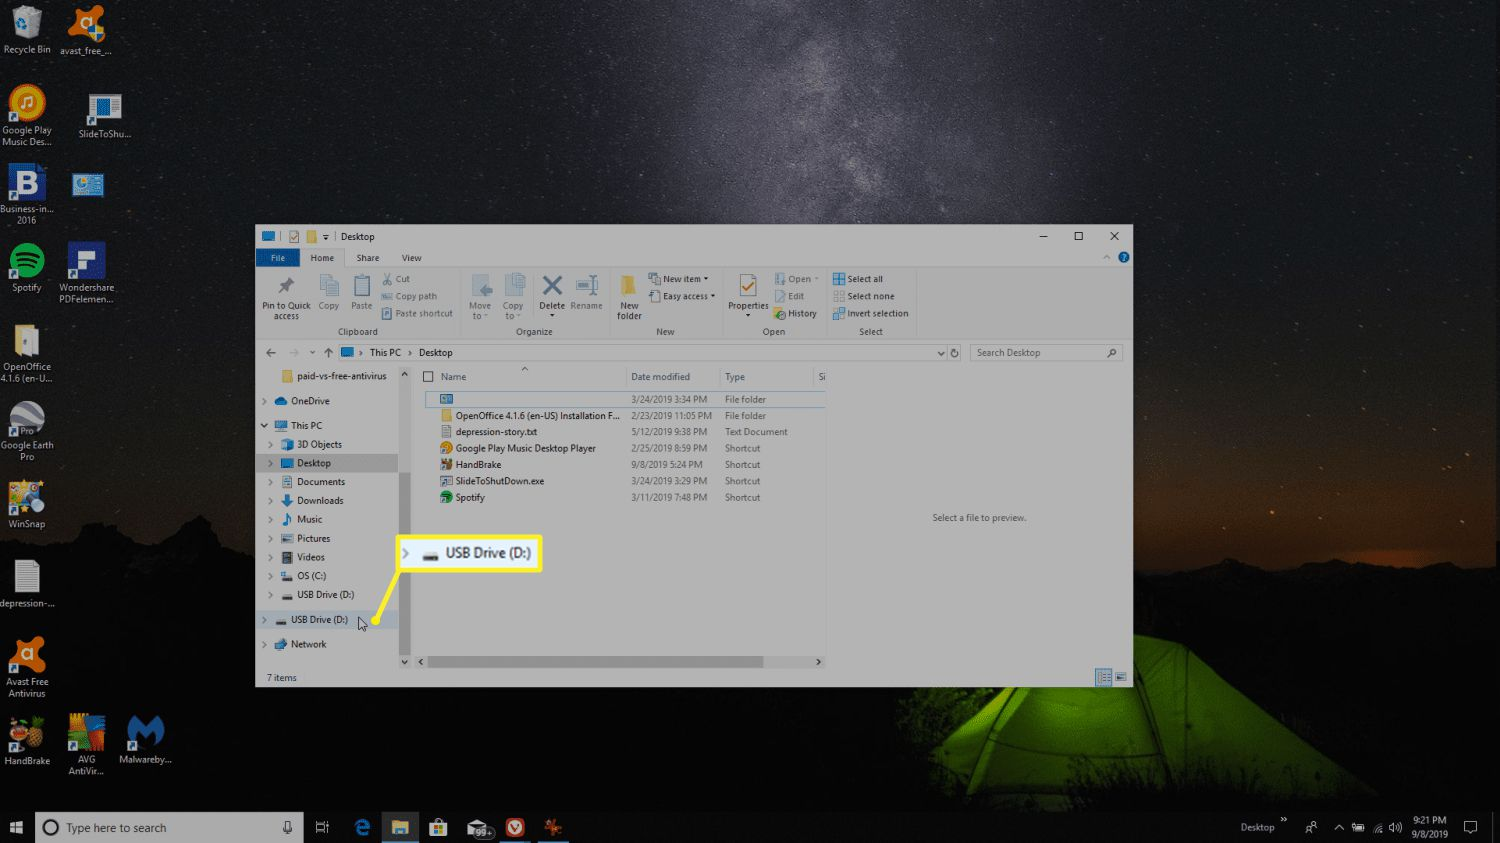 Attaching a USB stick to a computer